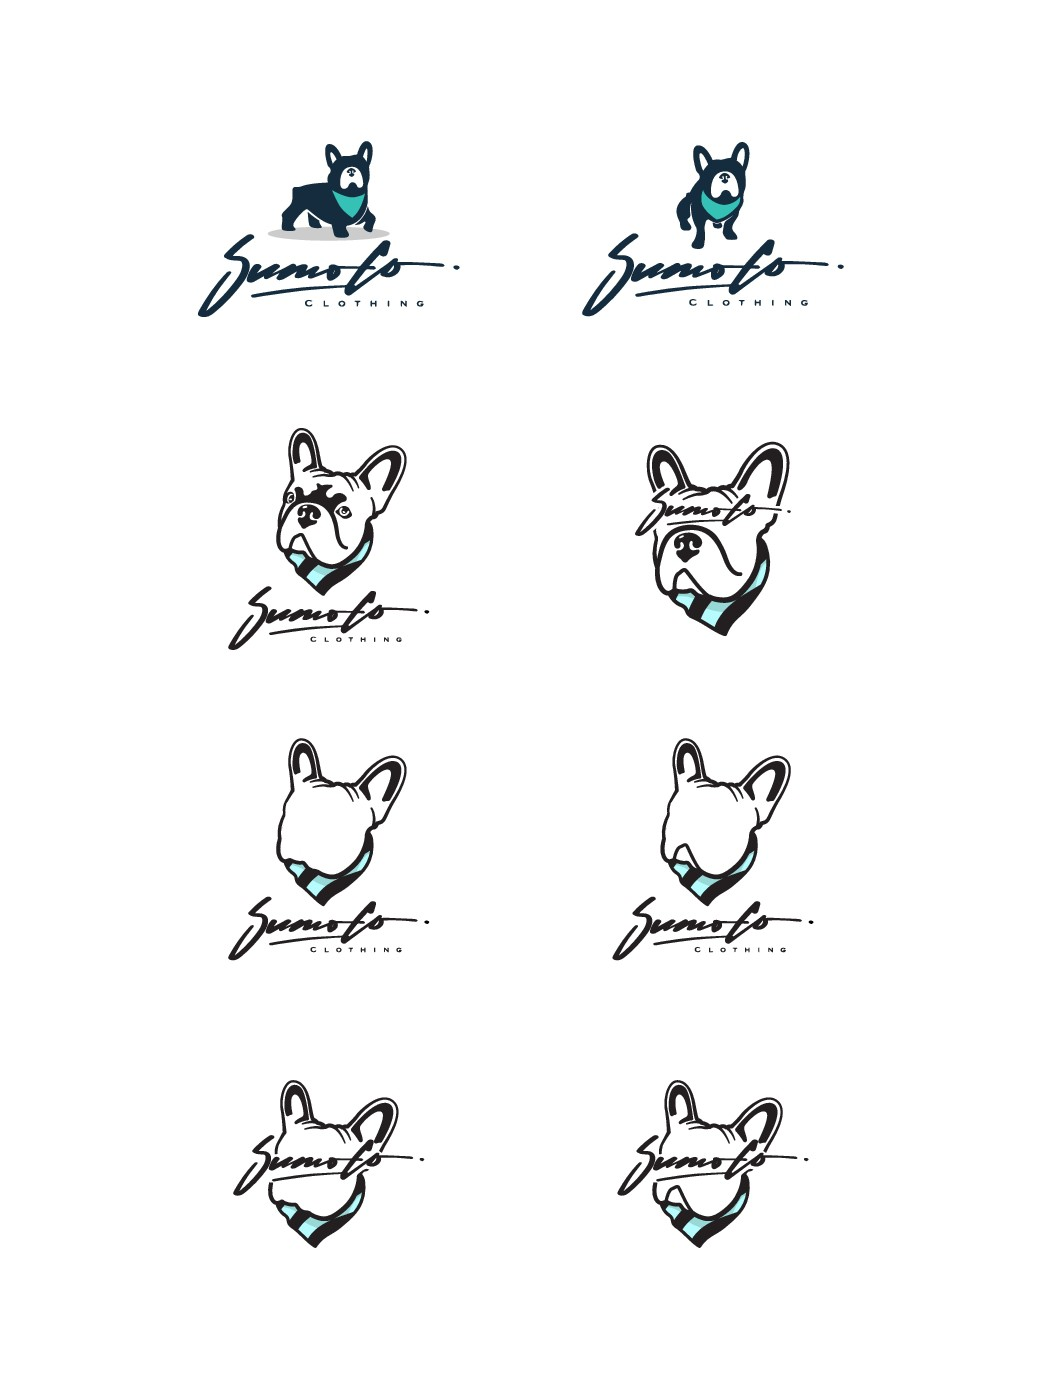 Design a hypebeast/streetstyle logo for Sumo Co. clothing brand - french bulldog is the focus!